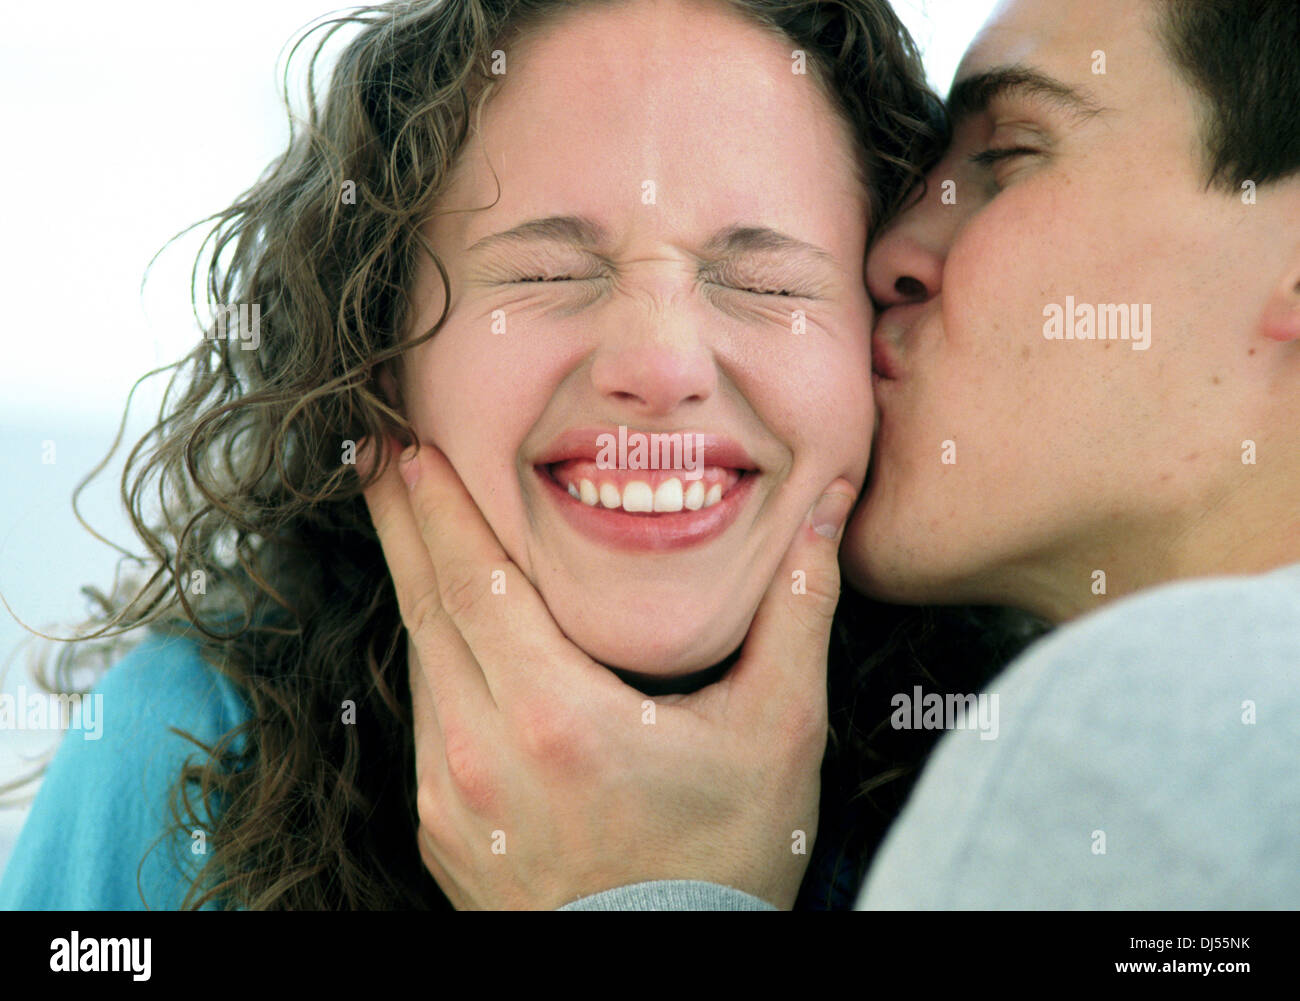 Christian dating kiss on the cheek